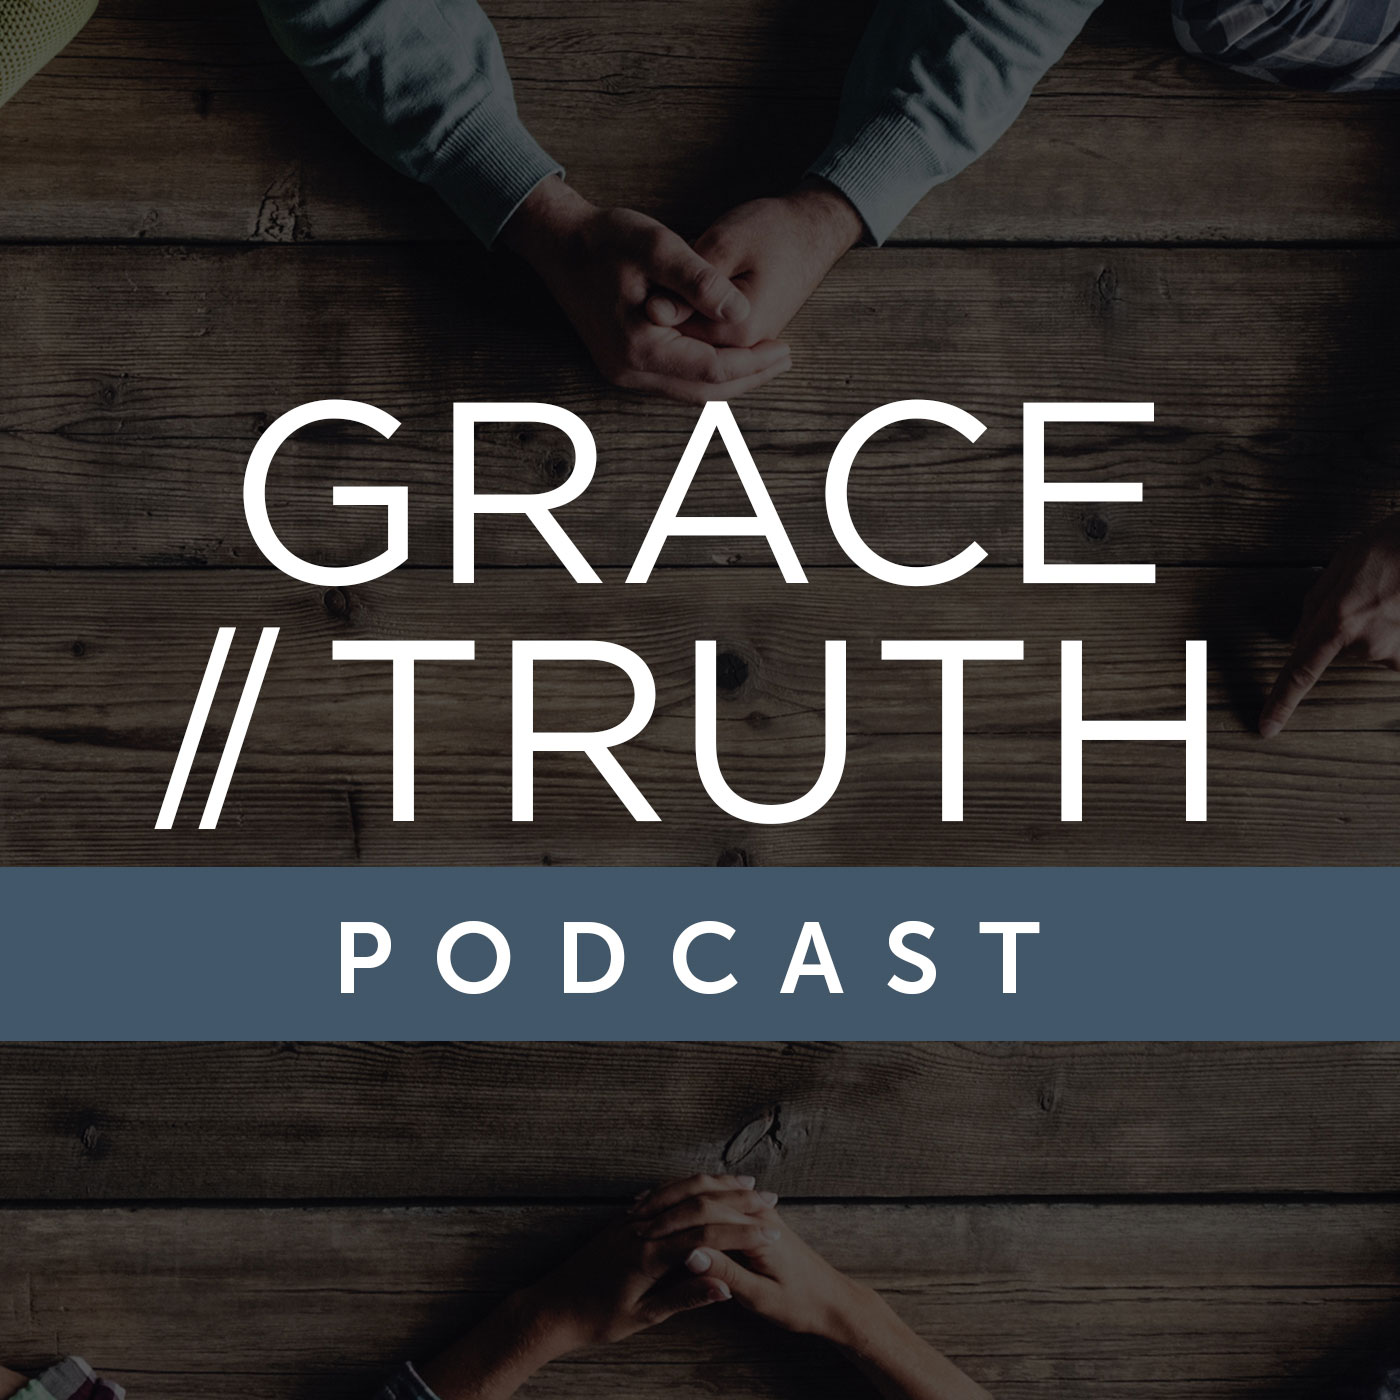 Grace/Truth Podcast